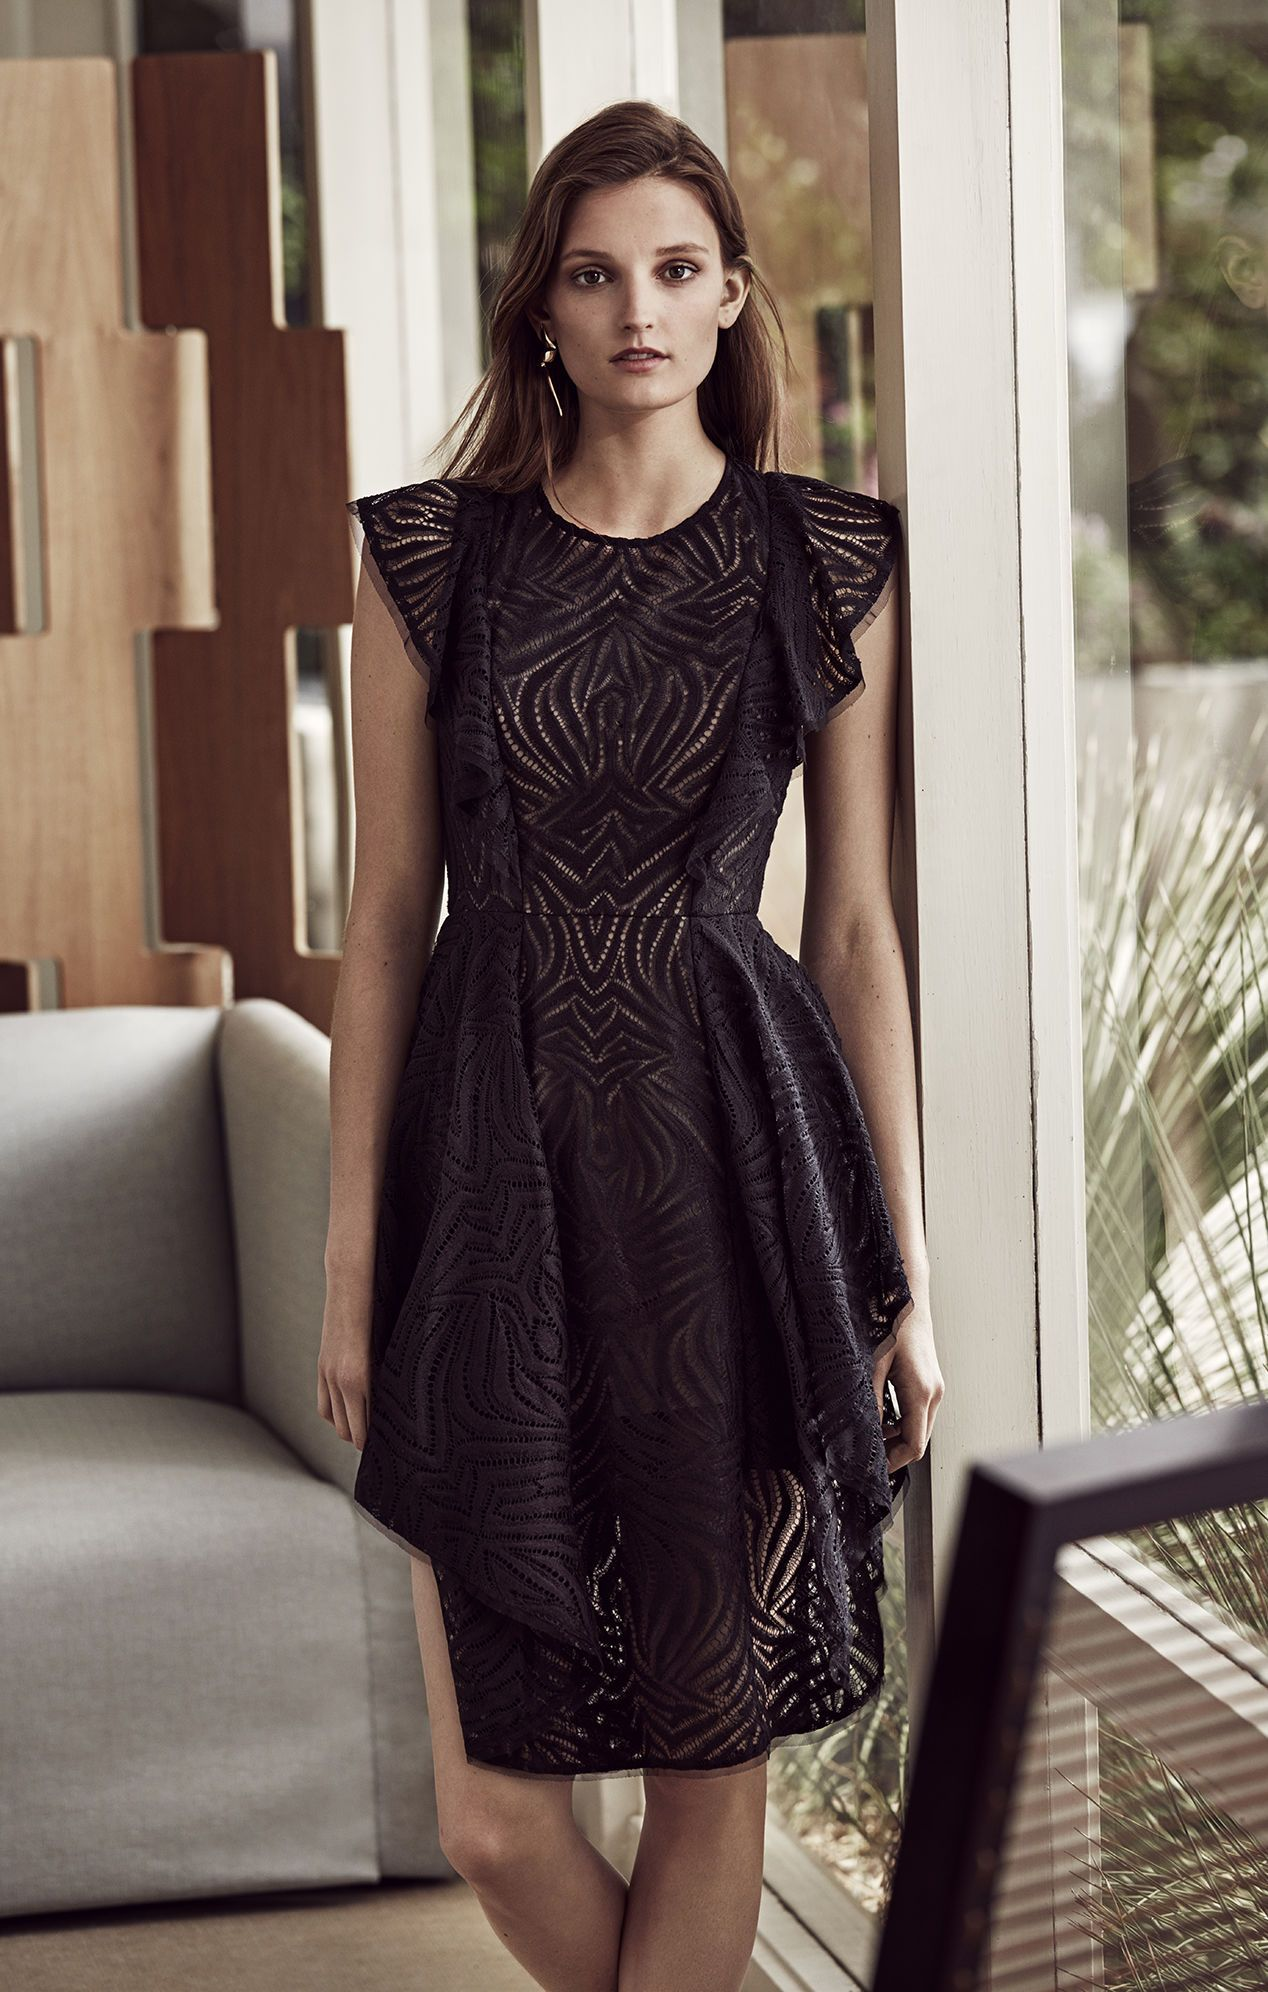 Browse Through A Stunning Collection Of Cocktail Dresses From Top Designers Buyer Sel Cocktail Dress Lace Cocktail Dress Maternity Black Wedding Guest Outfits [ 1992 x 1268 Pixel ]